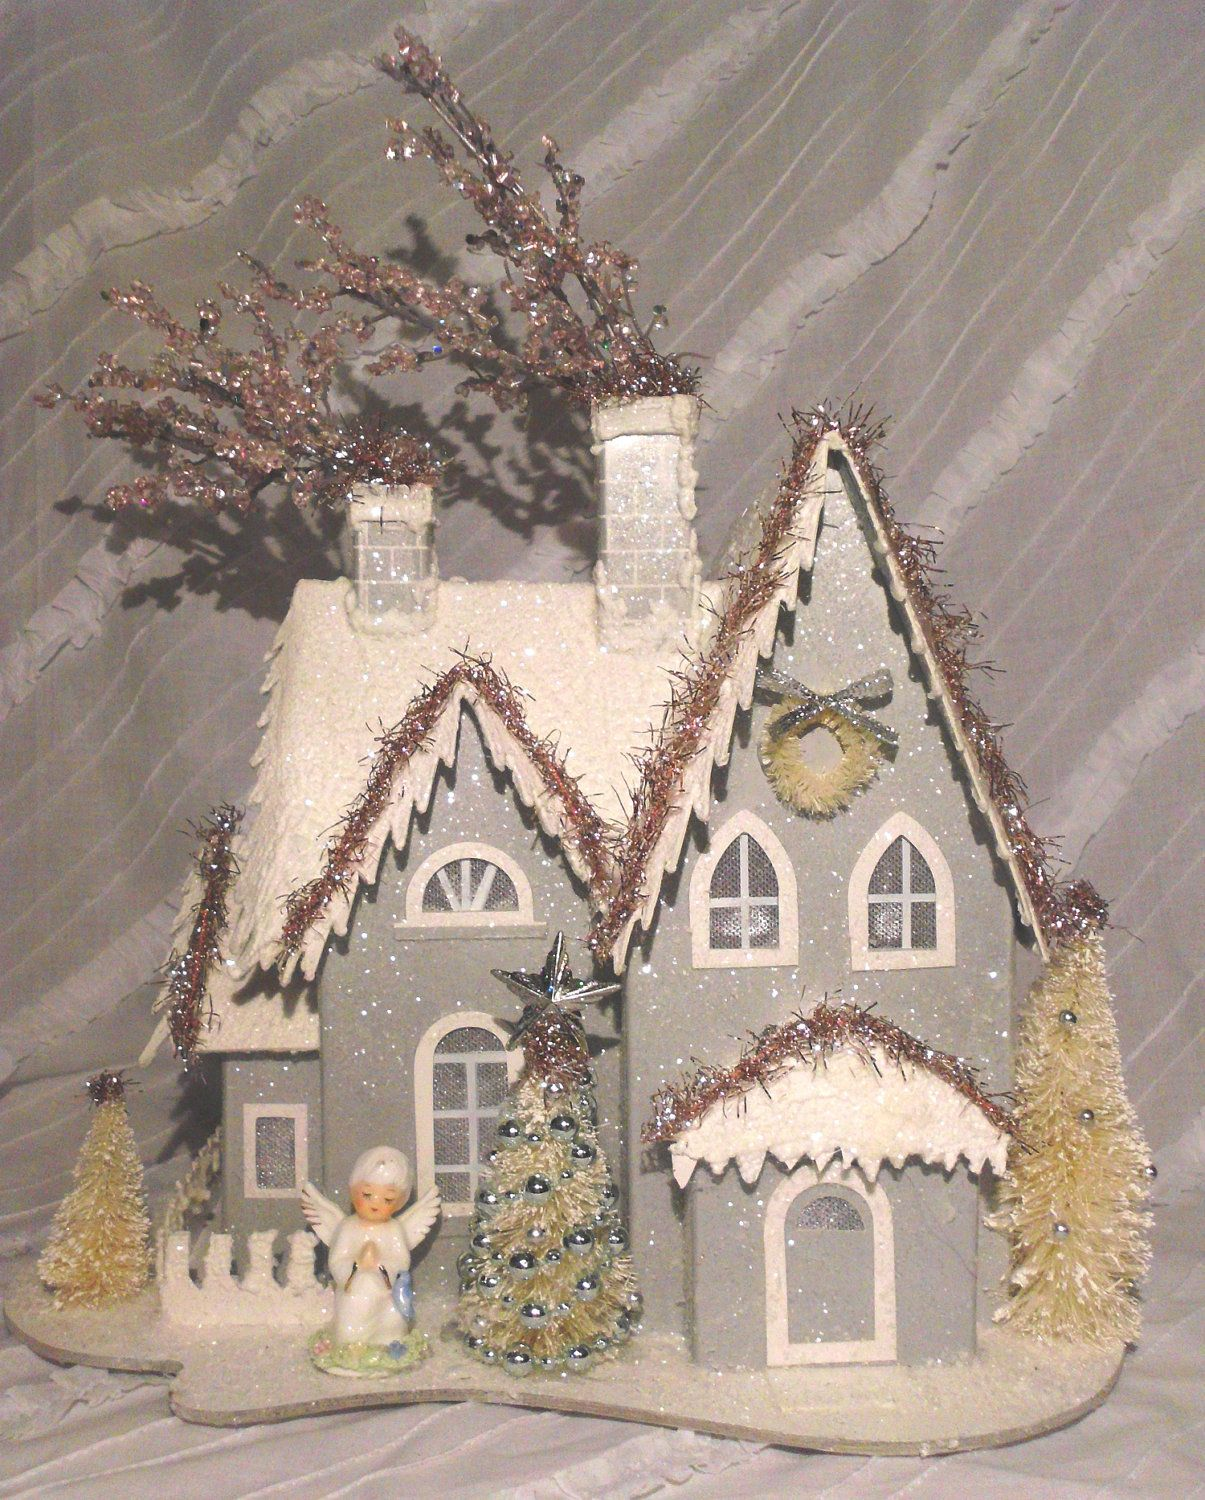 Silver Vintage Inspired Christmas Putz House | Winter ...